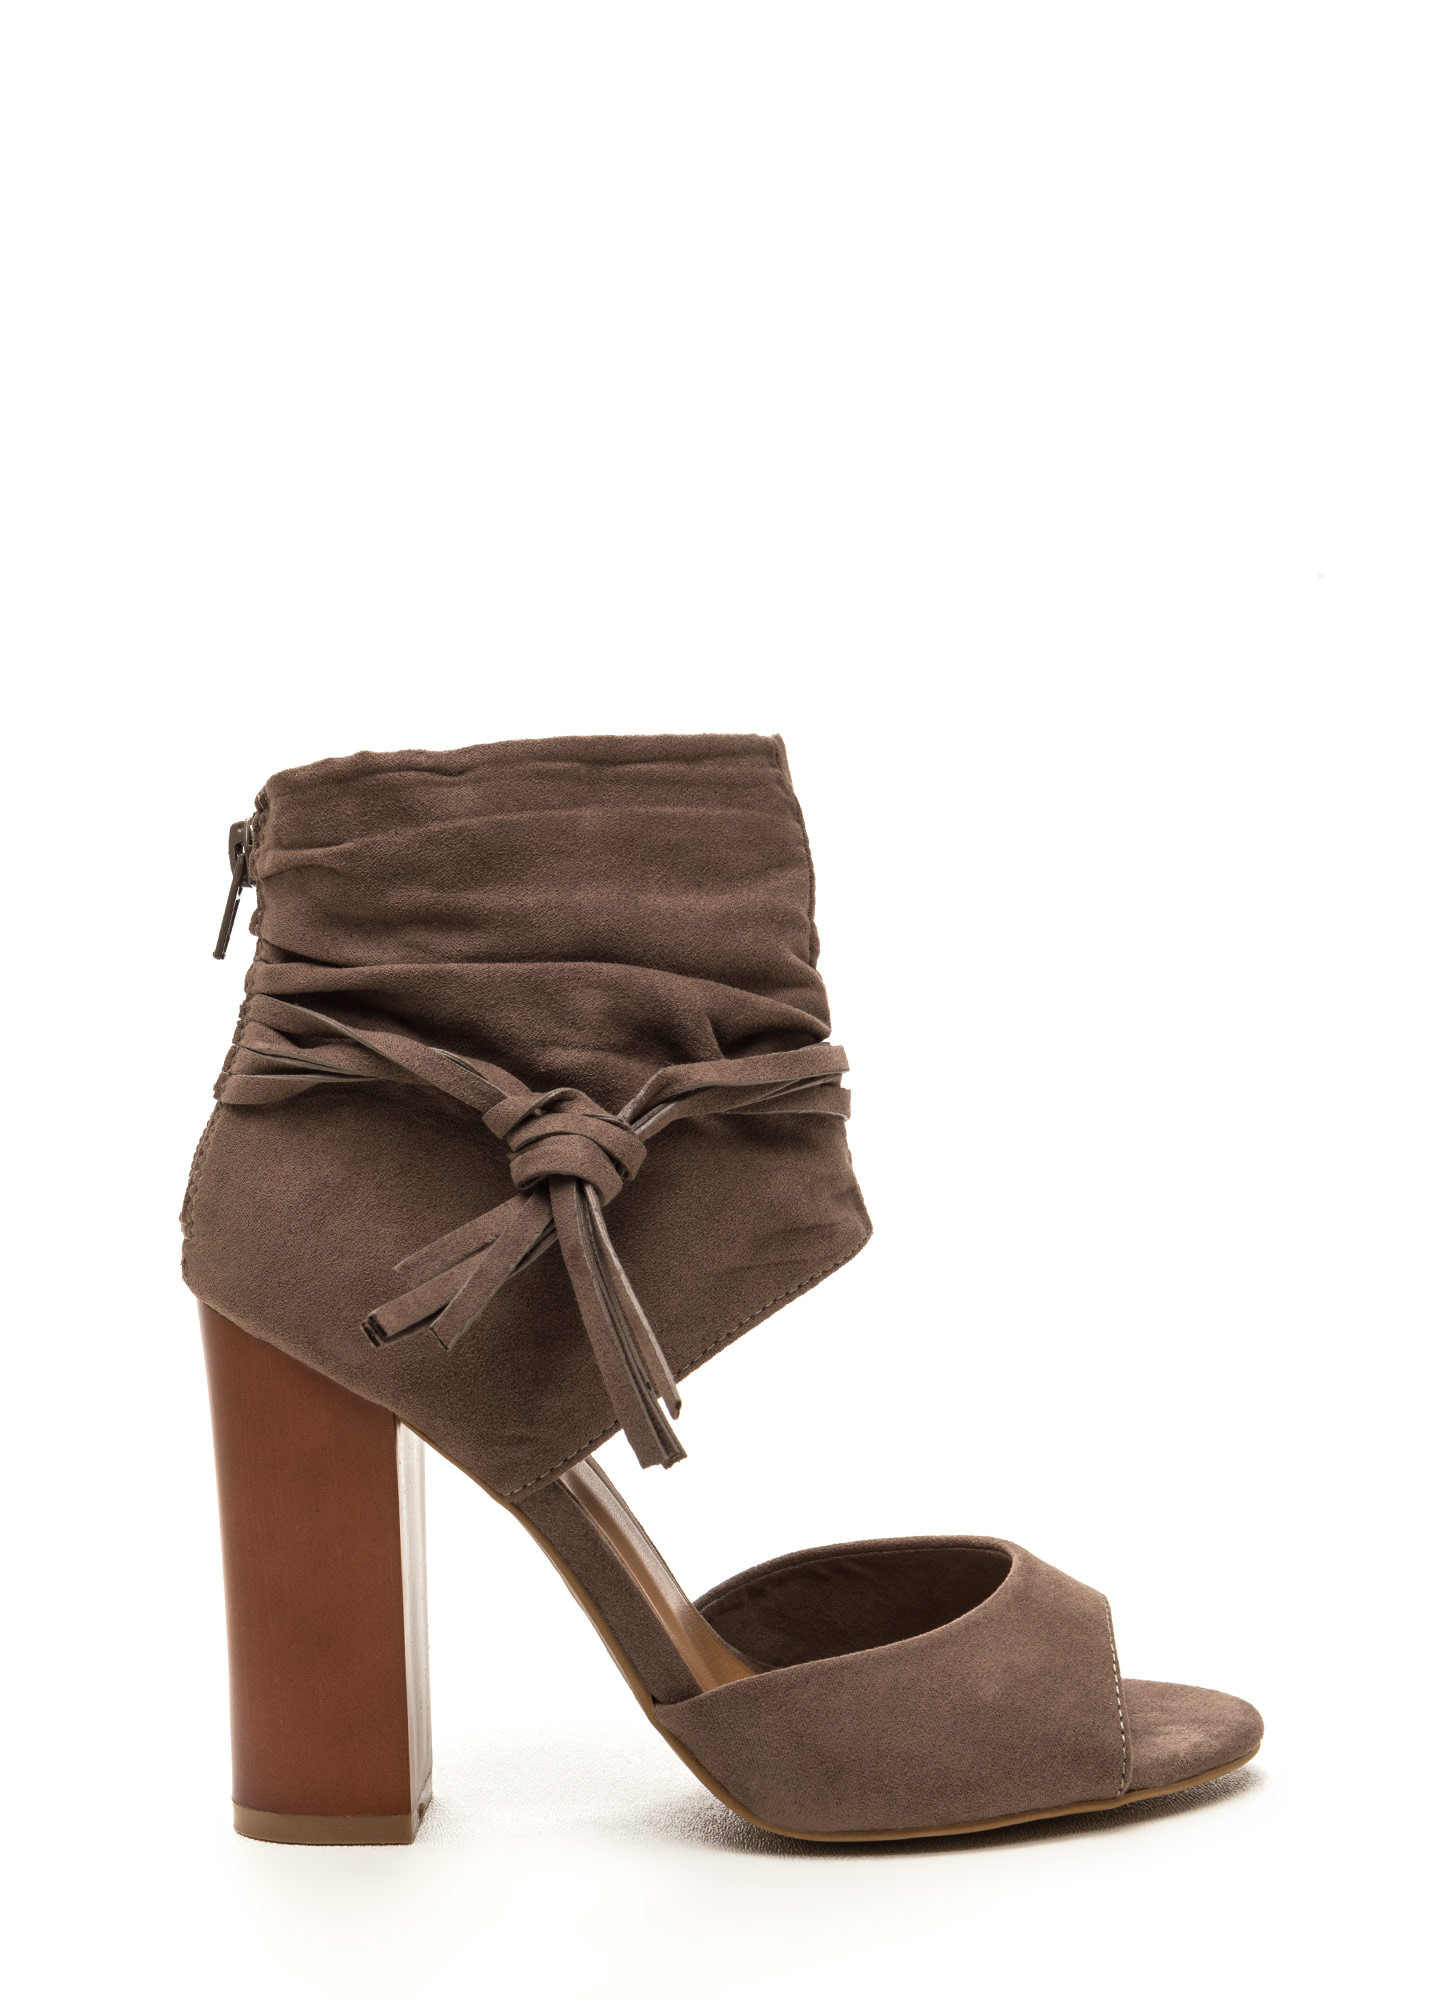 Tassel Takeover Slouchy Faux Suede Heels TAUPE